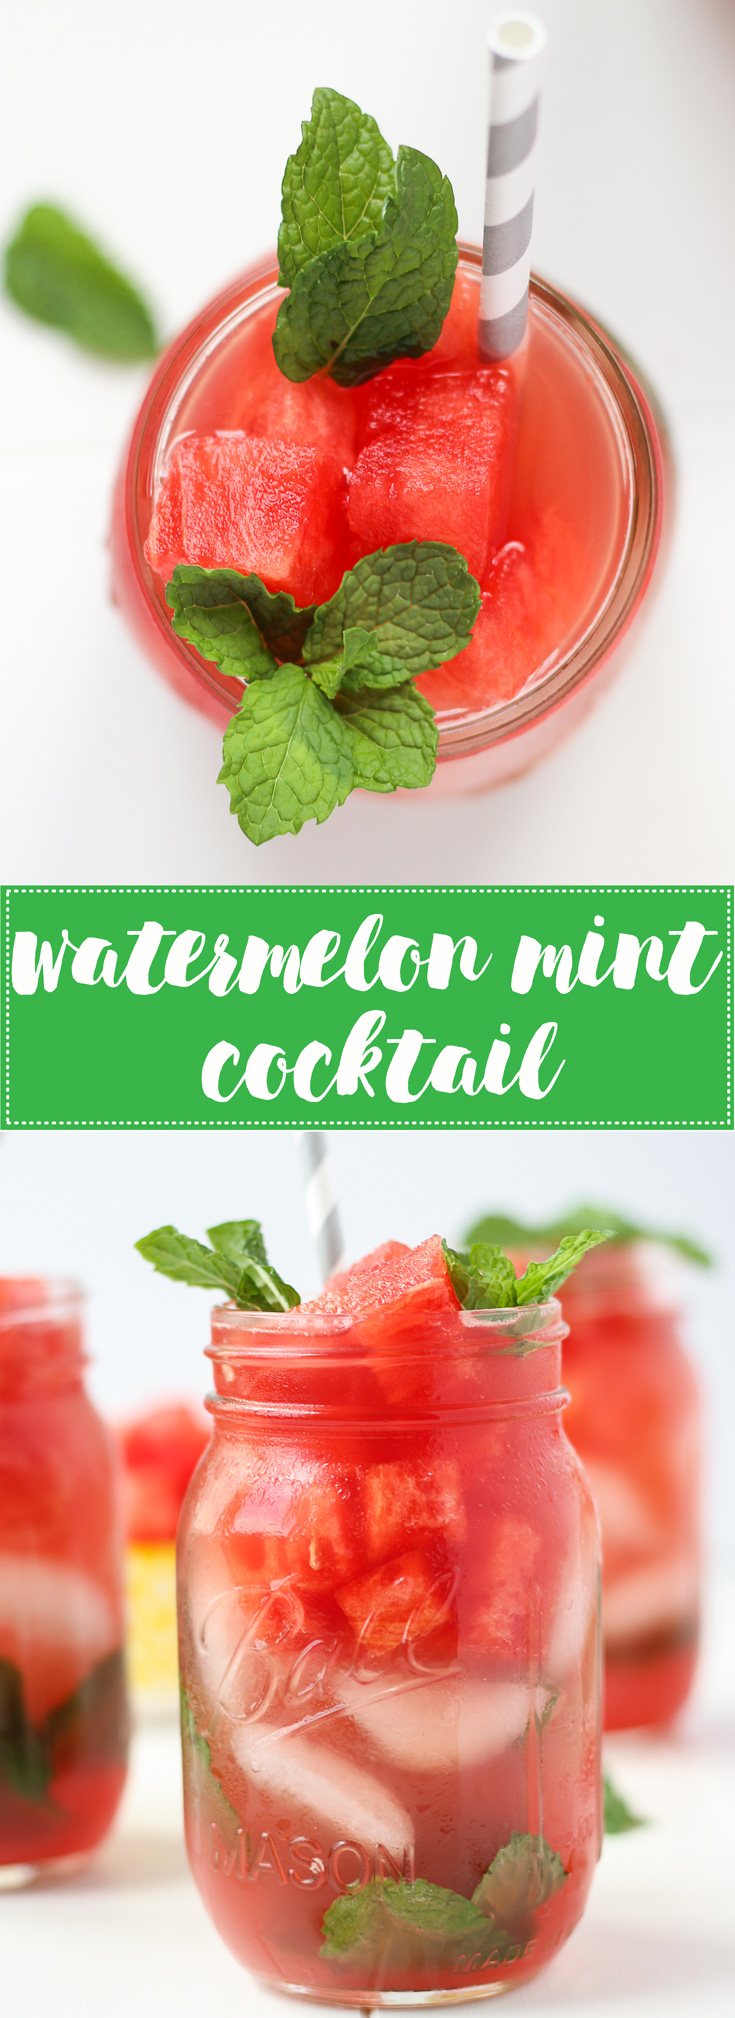 Watermelon Mint Cocktail - a light, refreshing, and healthy-ish way to enjoy an adult beverage this summer - bursting with fresh watermelon juice and fragrant mint leaves!